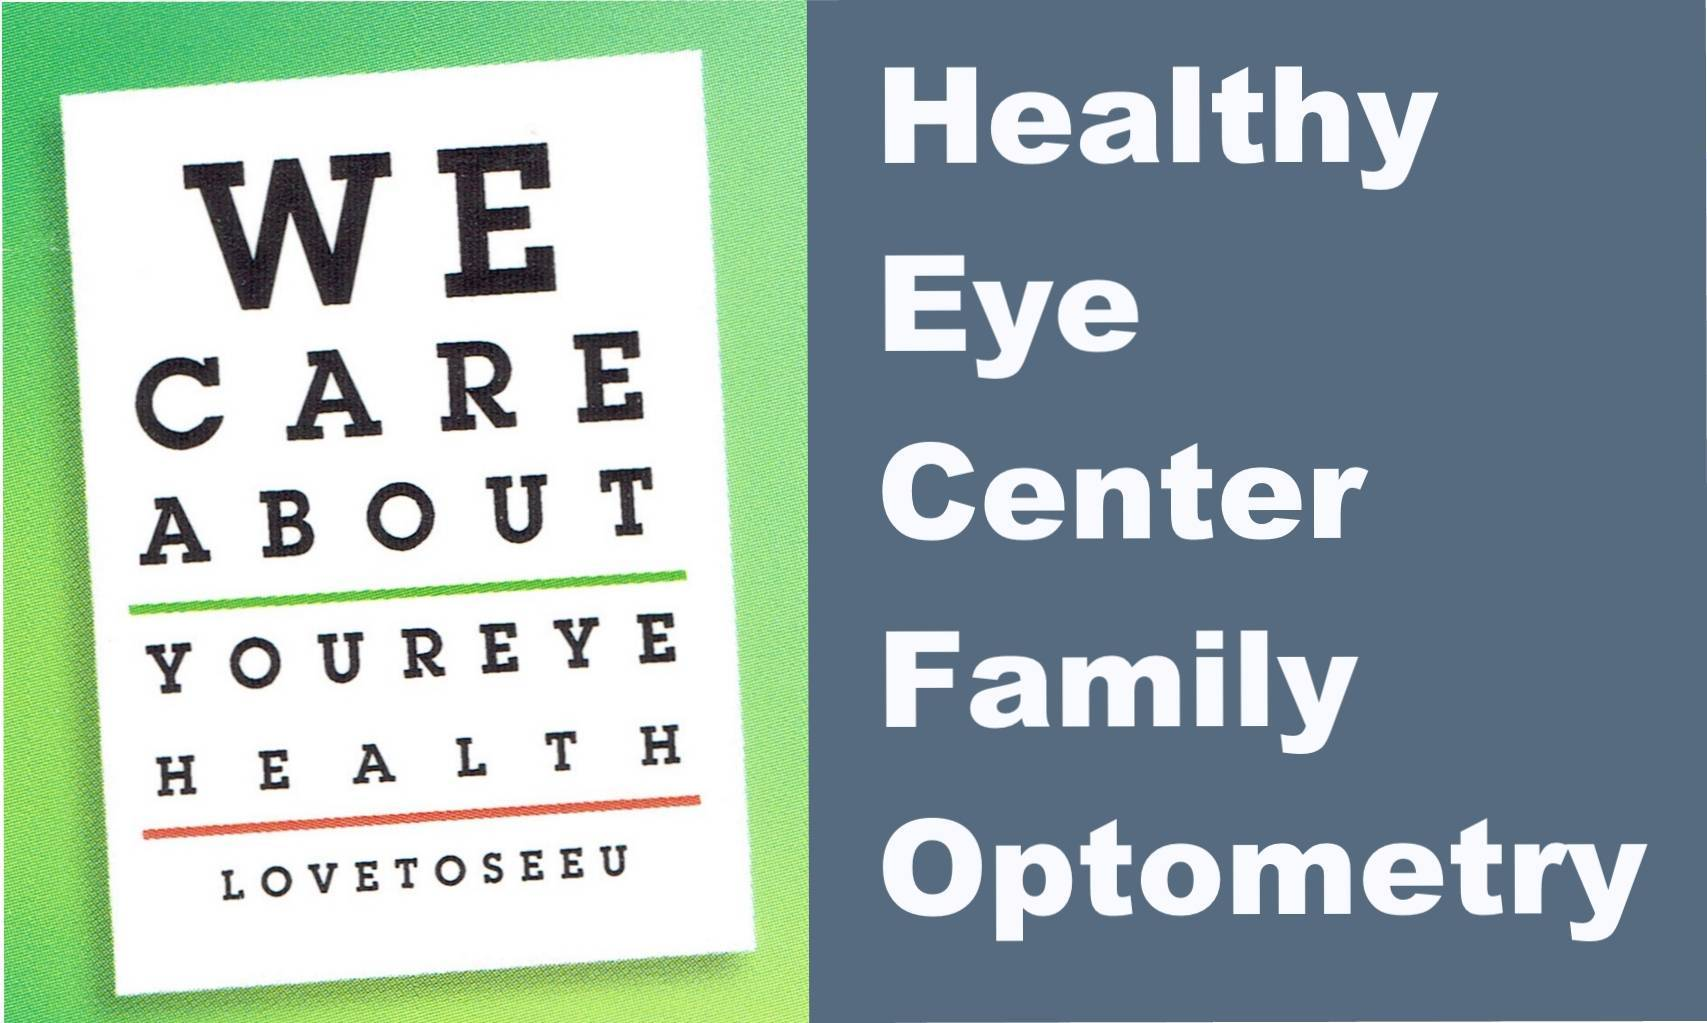 Healthy Eye Center Family Optometry